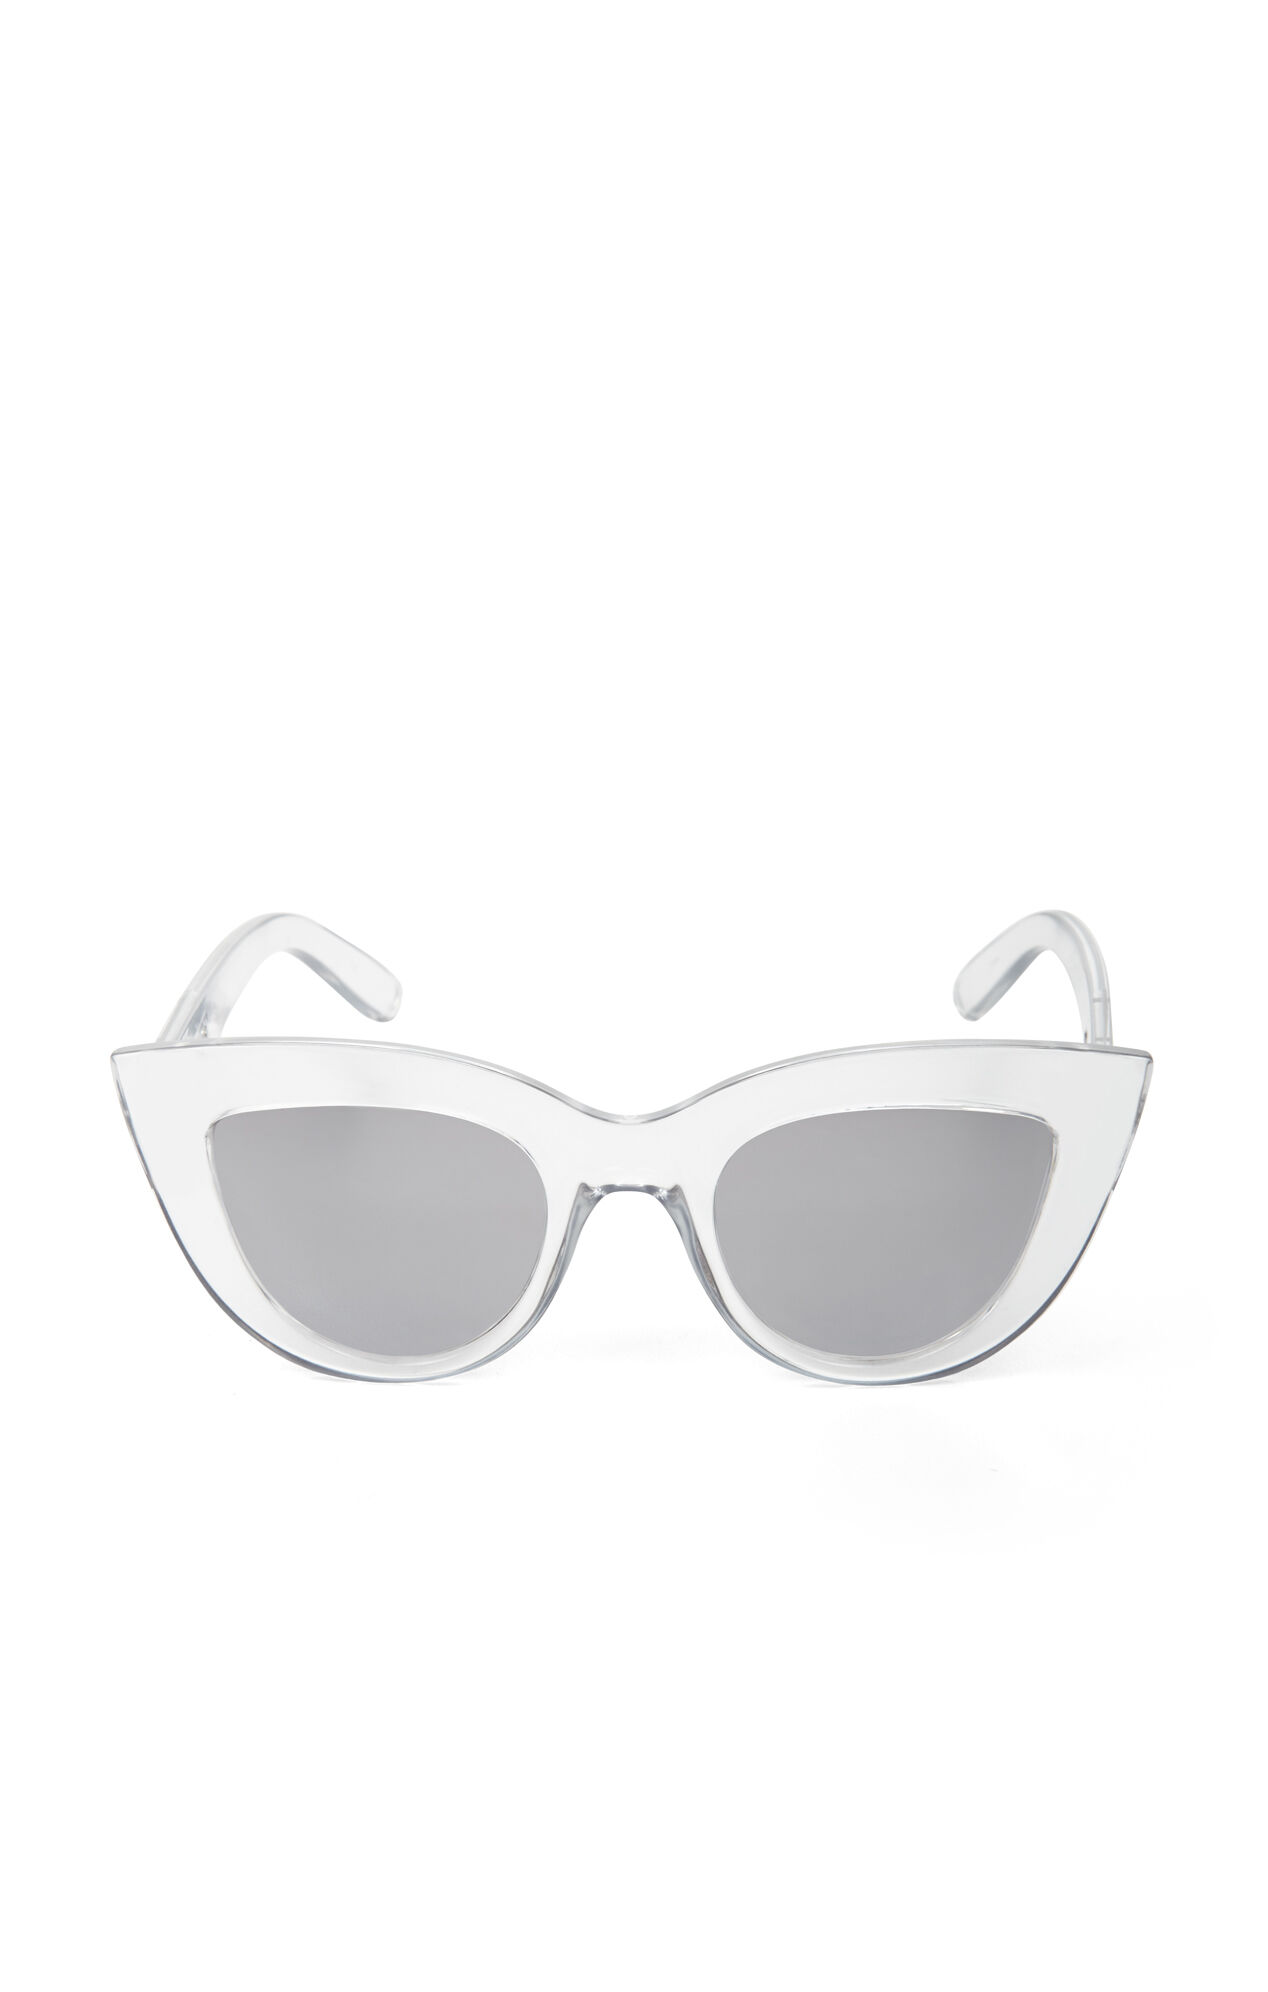 Novelty Cat-Eye Sunglasses